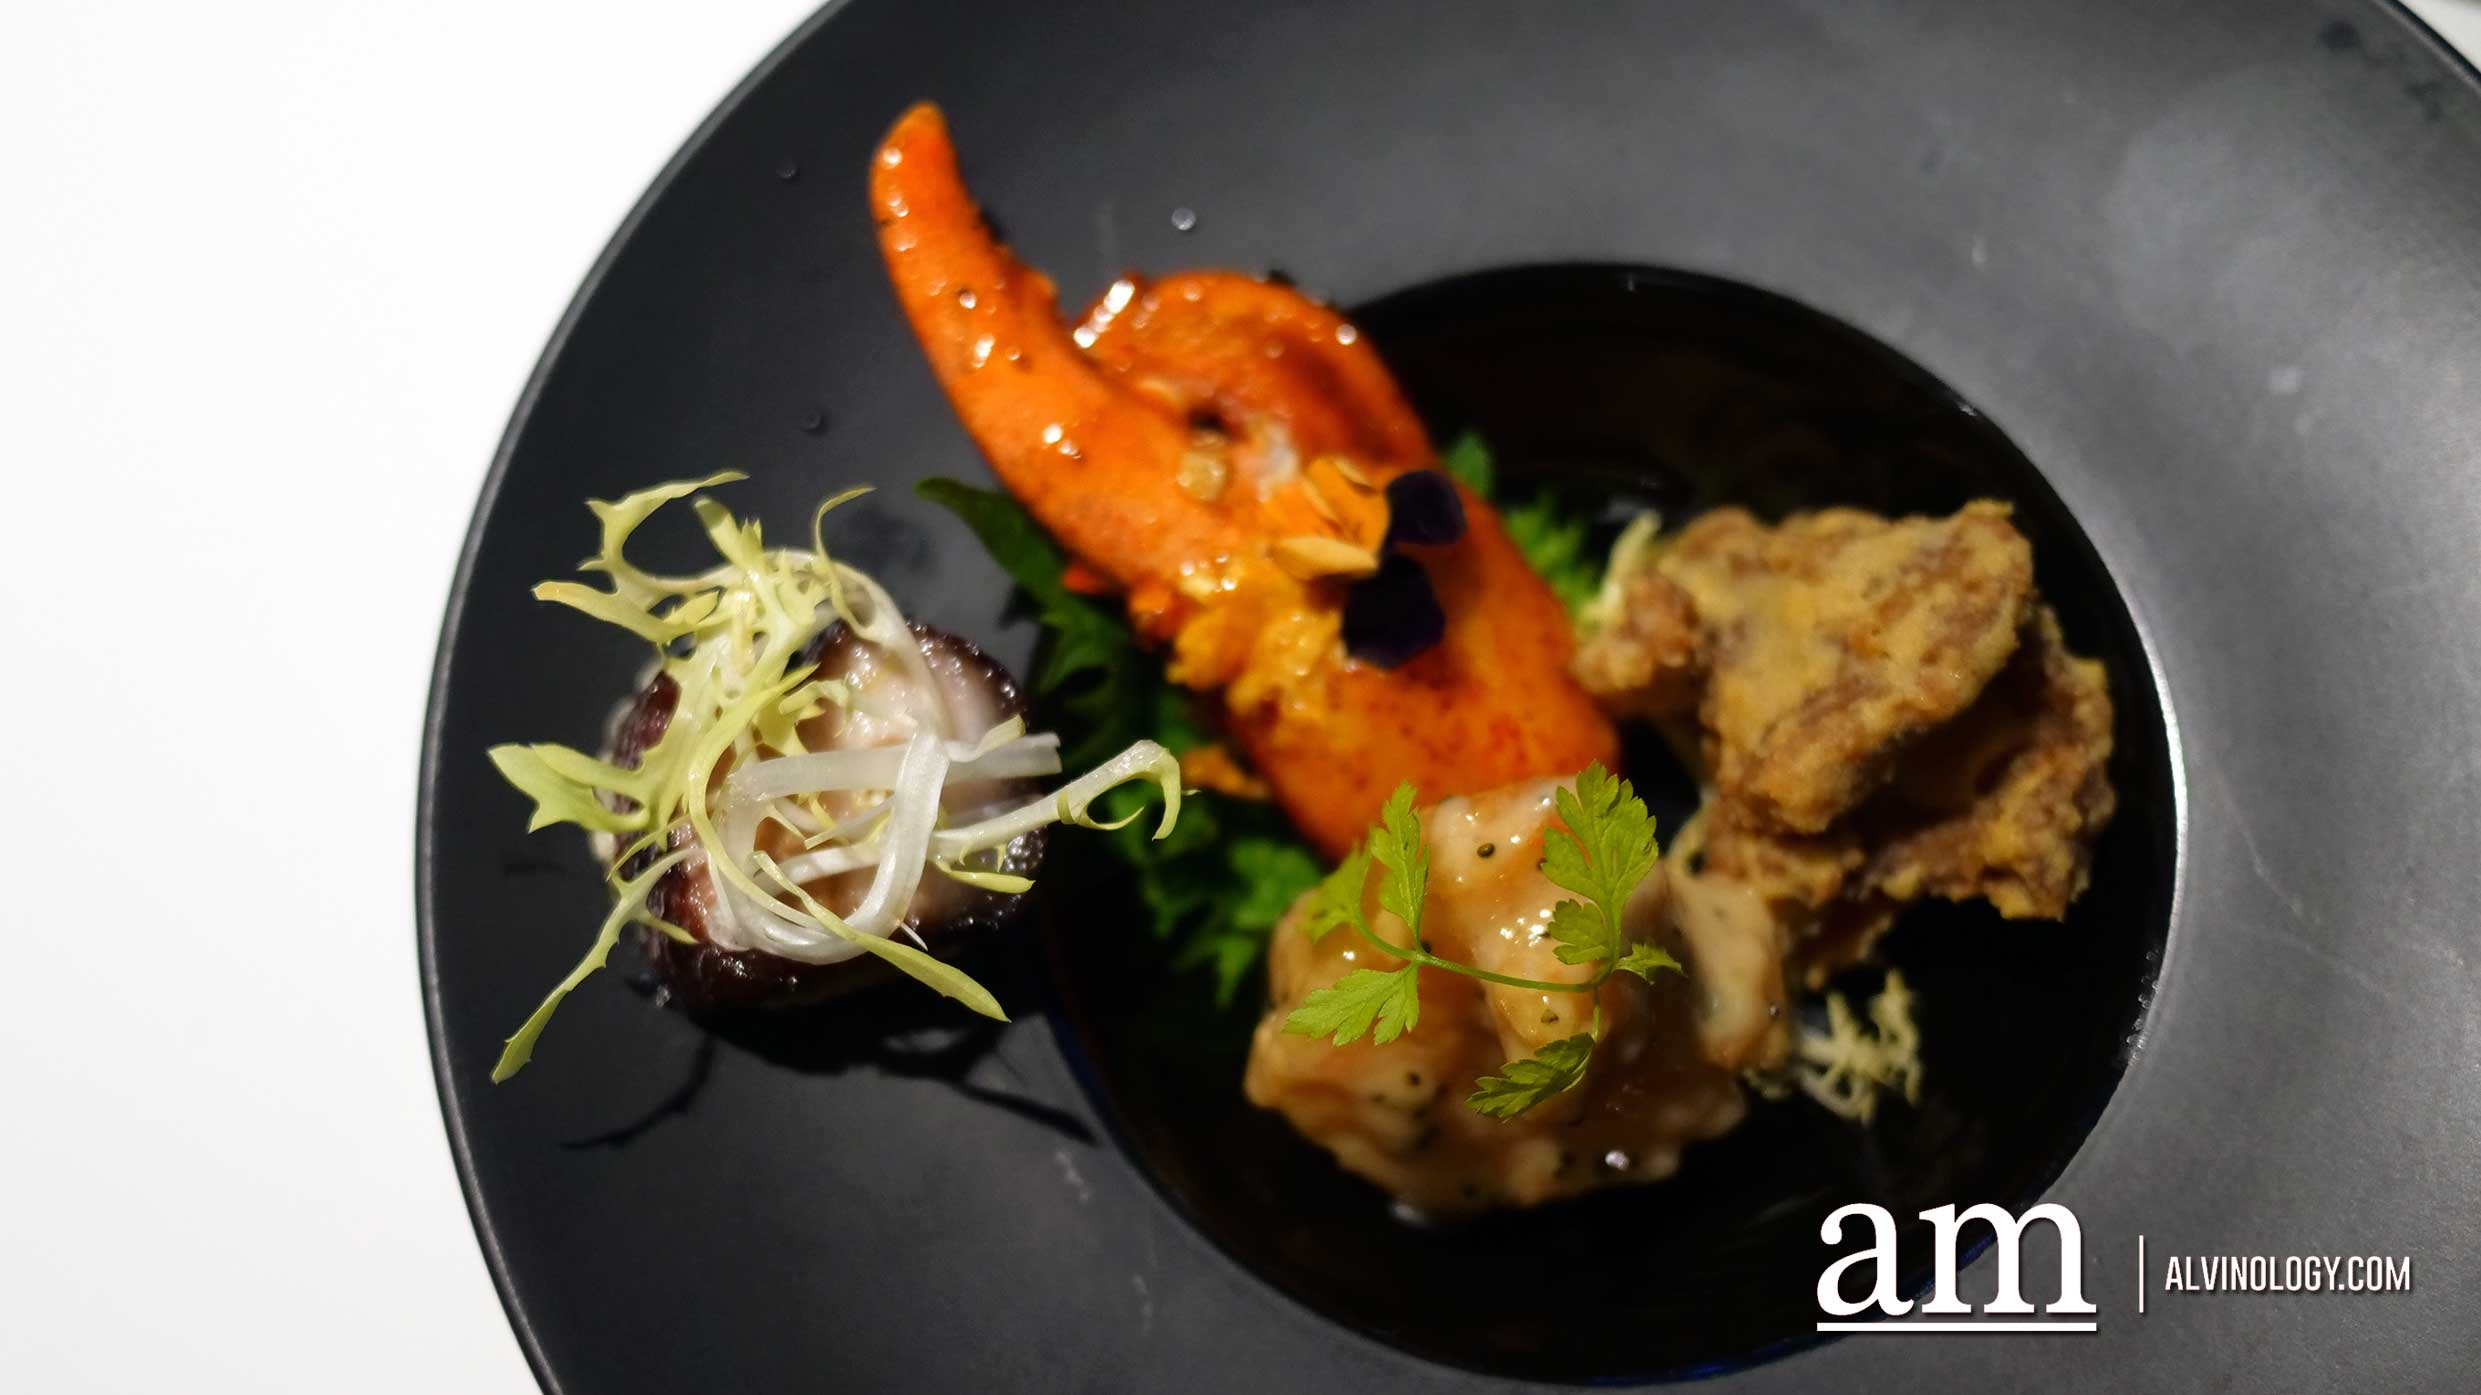 Mitzo at Grand Park Orchard refreshes their Cantonese Cuisine Menu - Alvinology